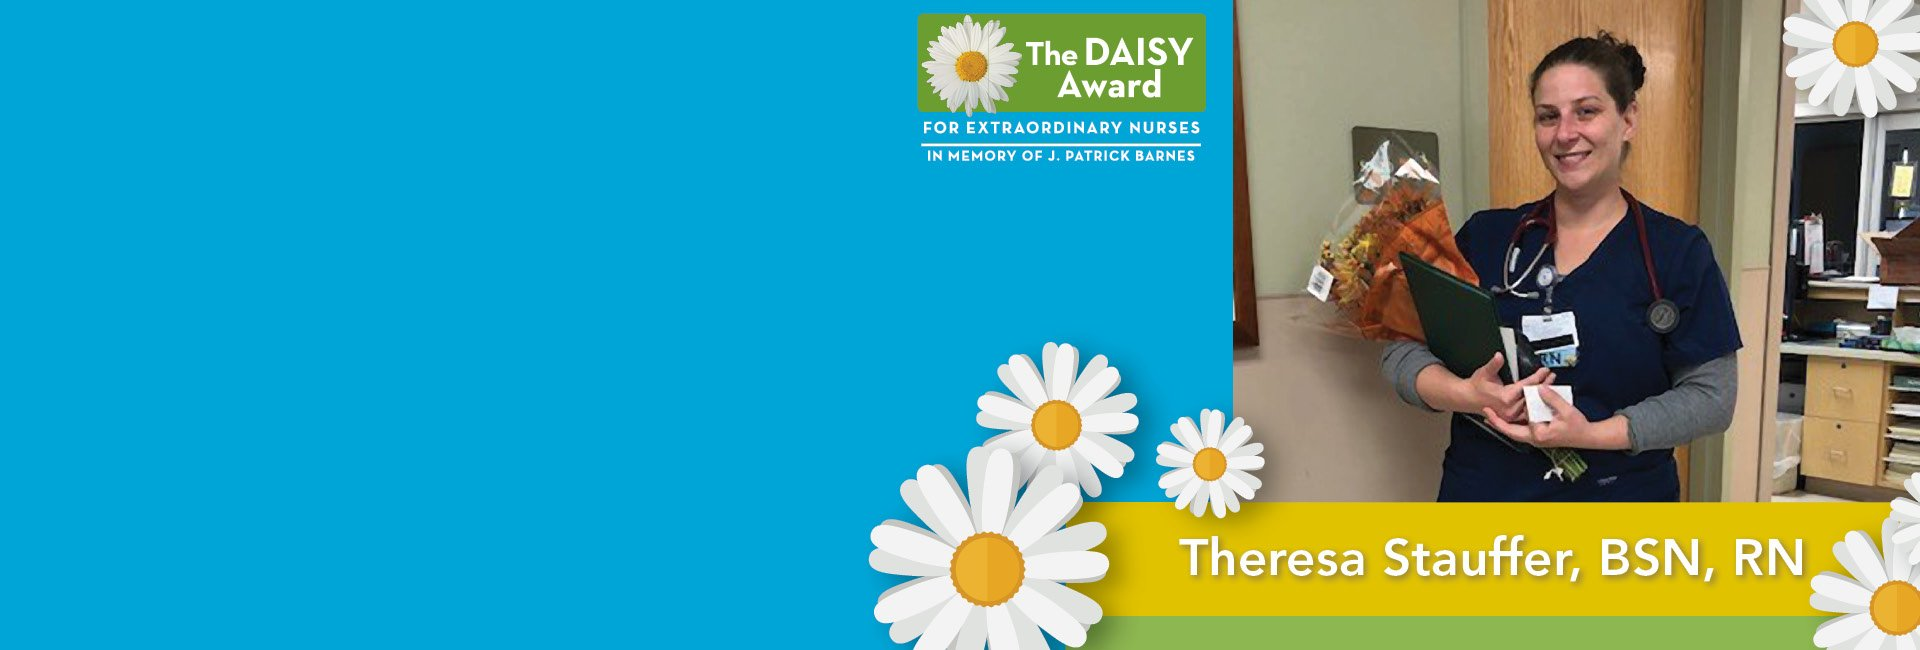 DAISY Award Theresa Stauffer, BSN, RN, Fourth Floor